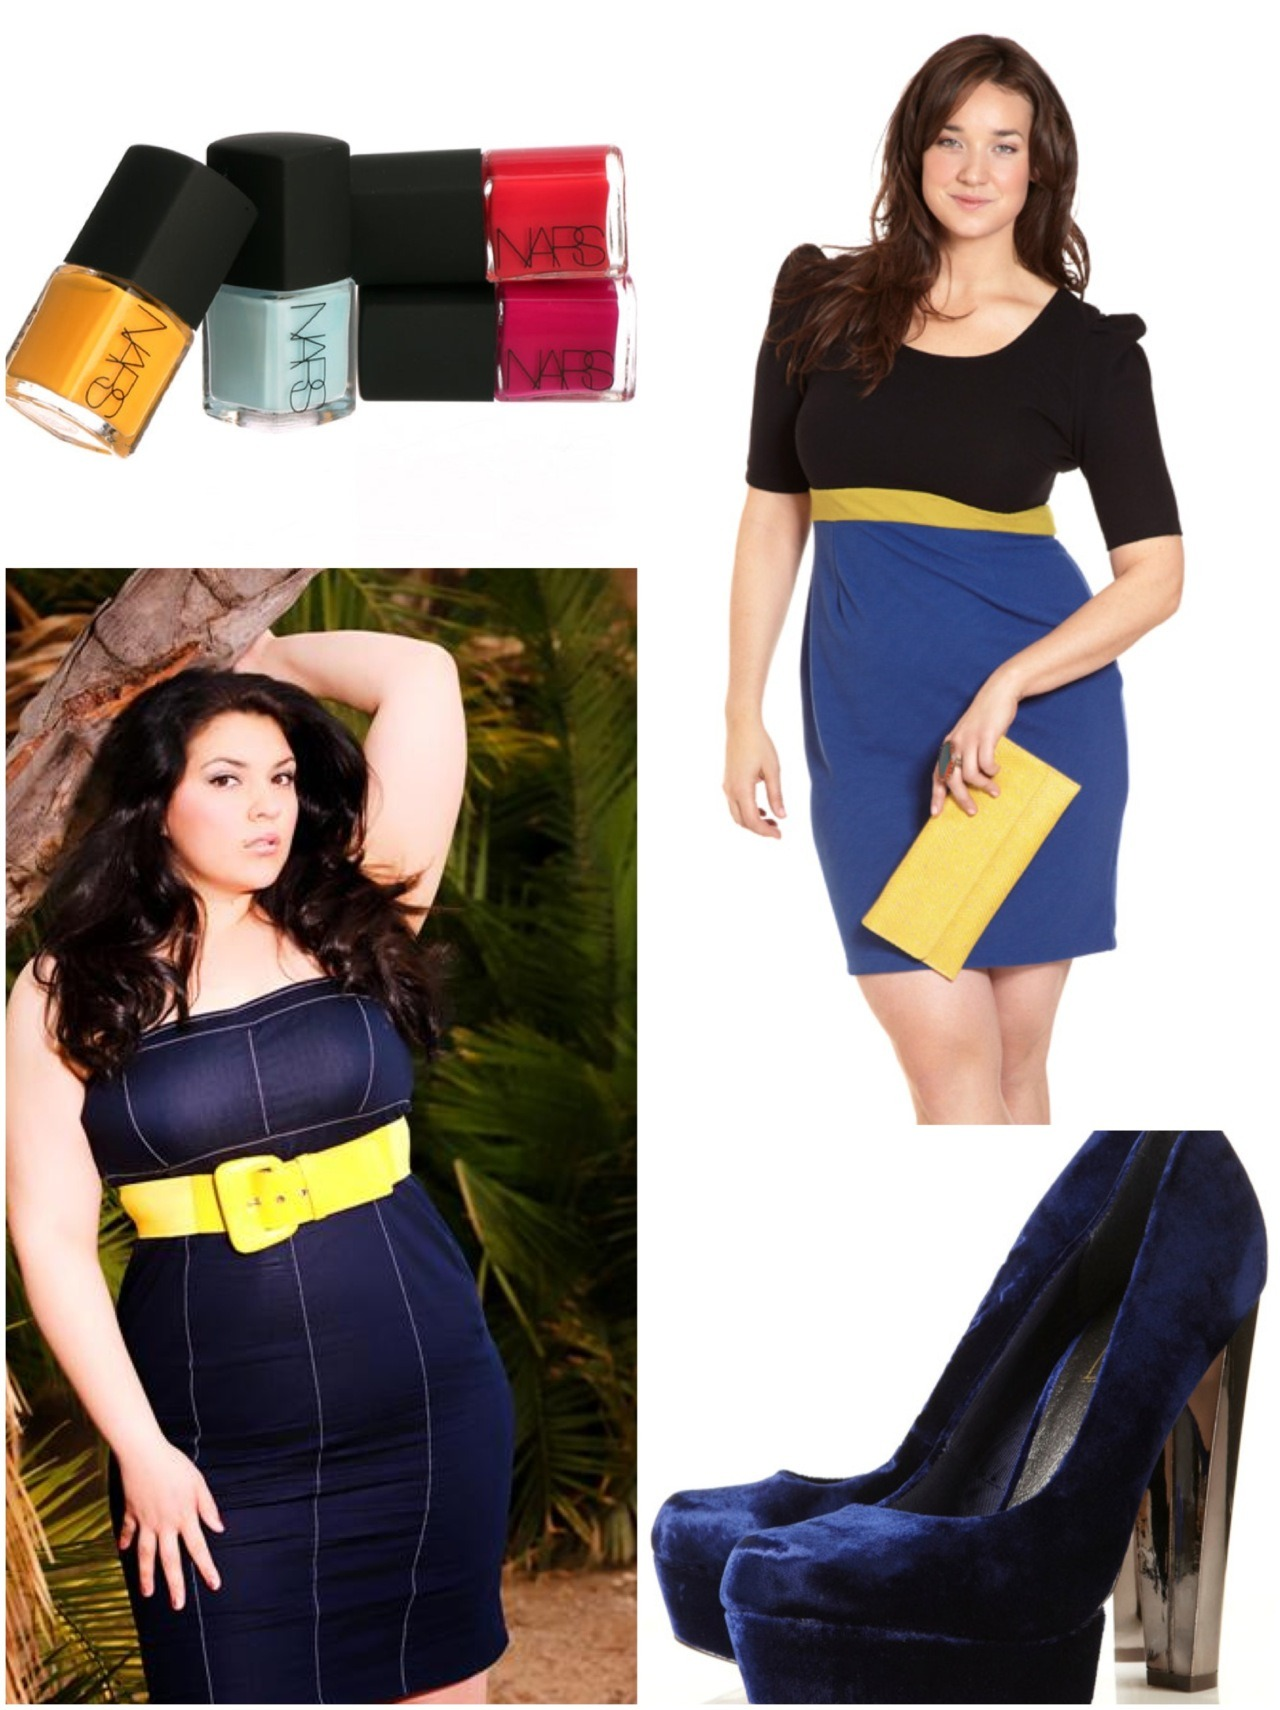 Add a pop of yellow with your blues makes you look Awsome and great color combination!!